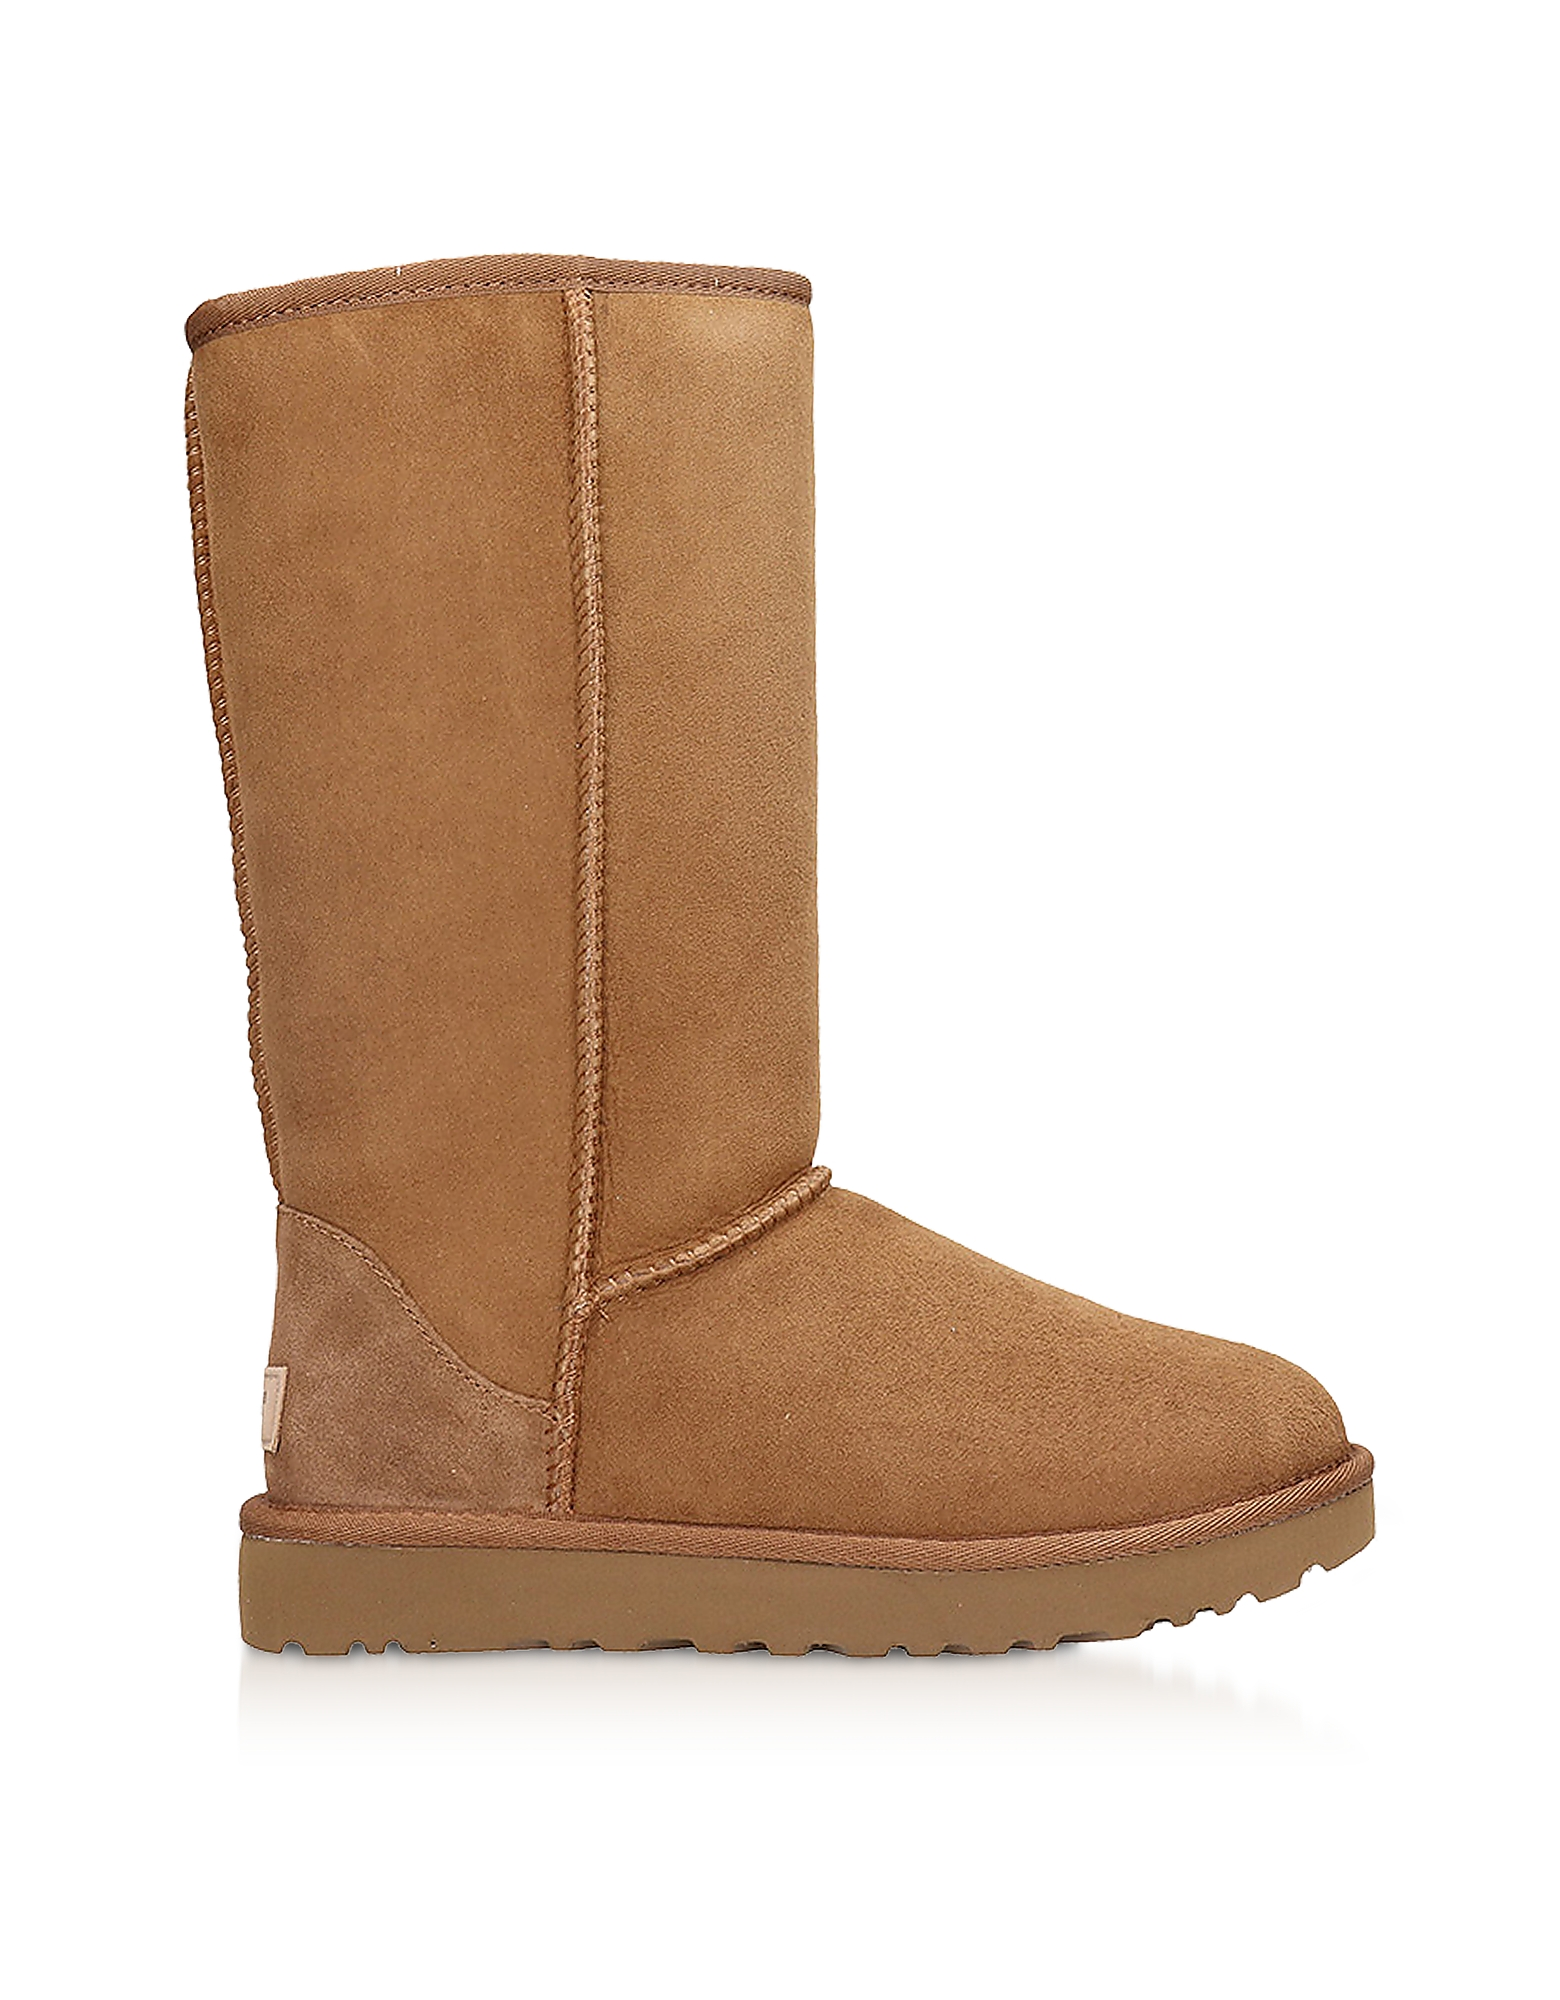 UGG Designer Shoes, Classic Tall Chestnut Boots